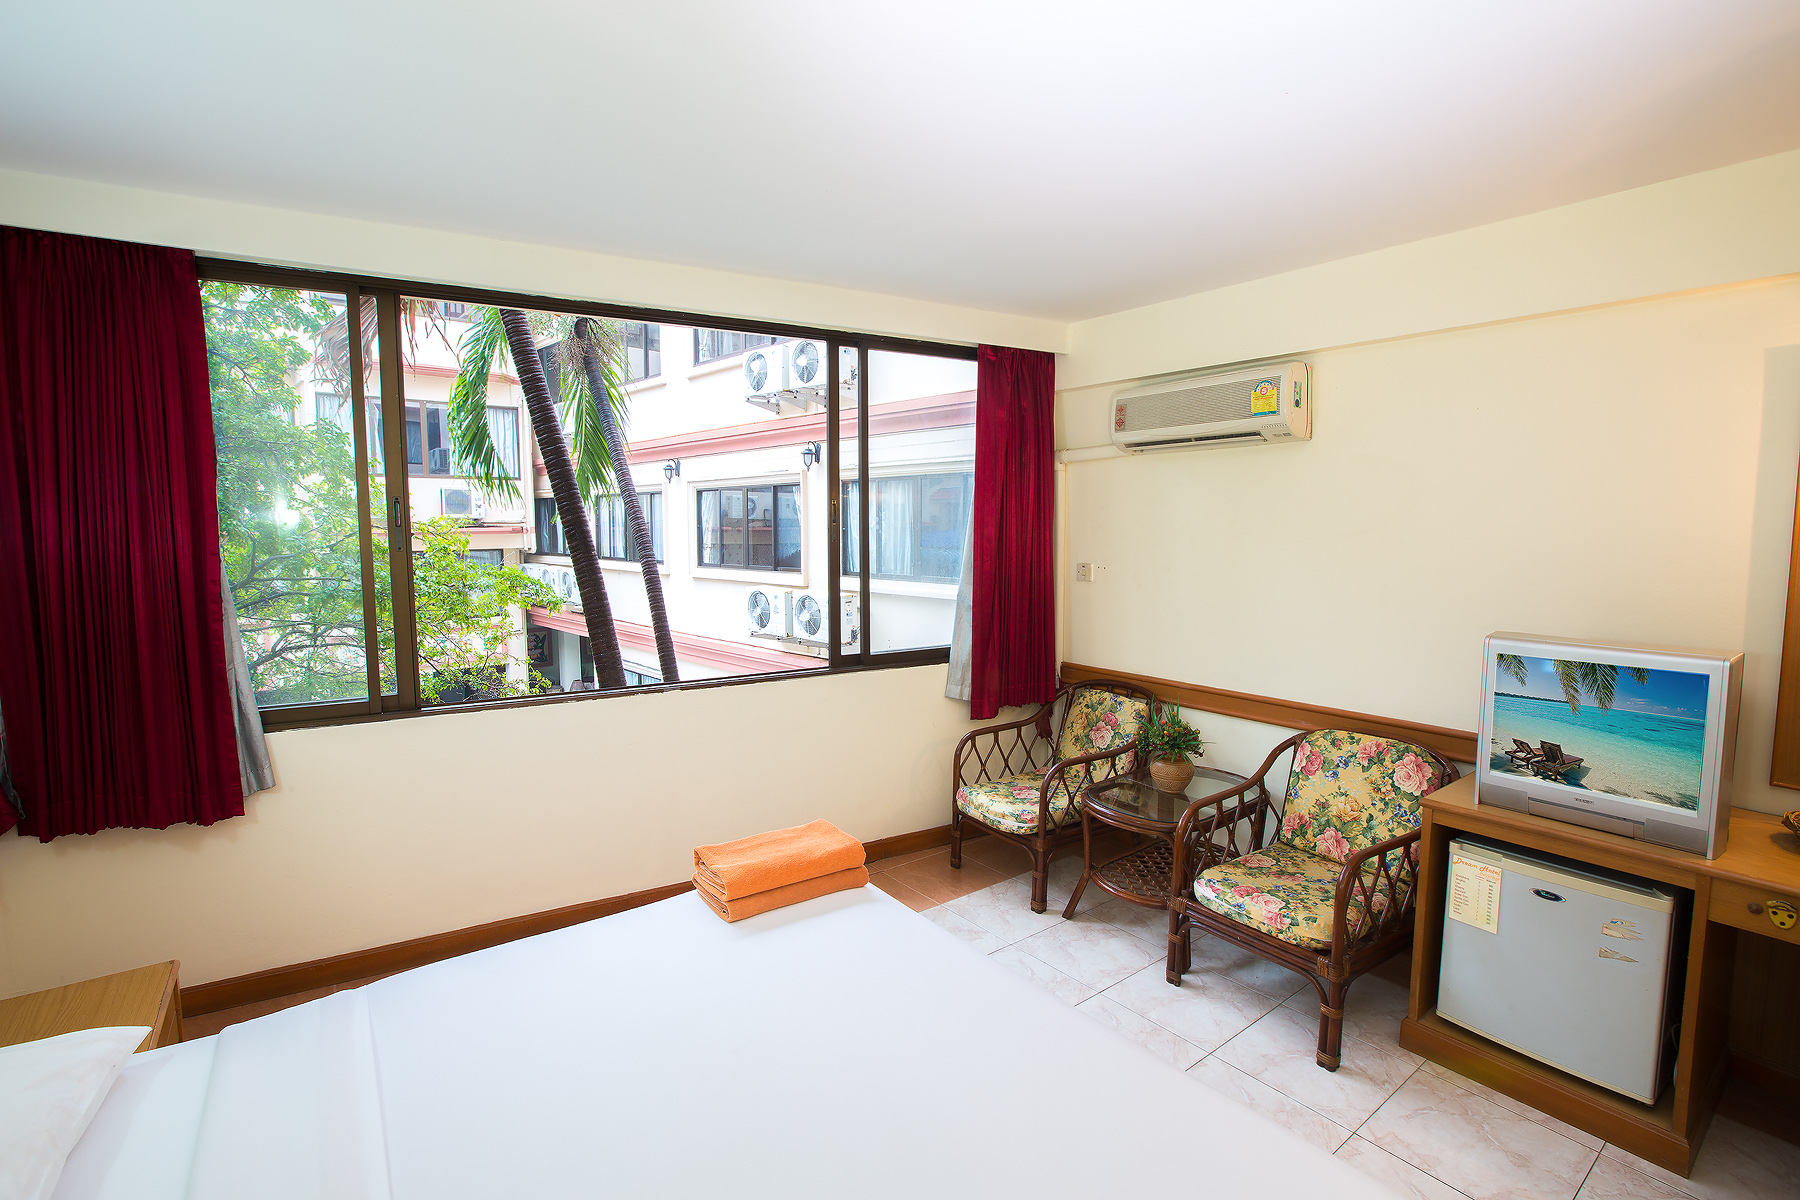 Dream Hotel Pattaya Standard Room